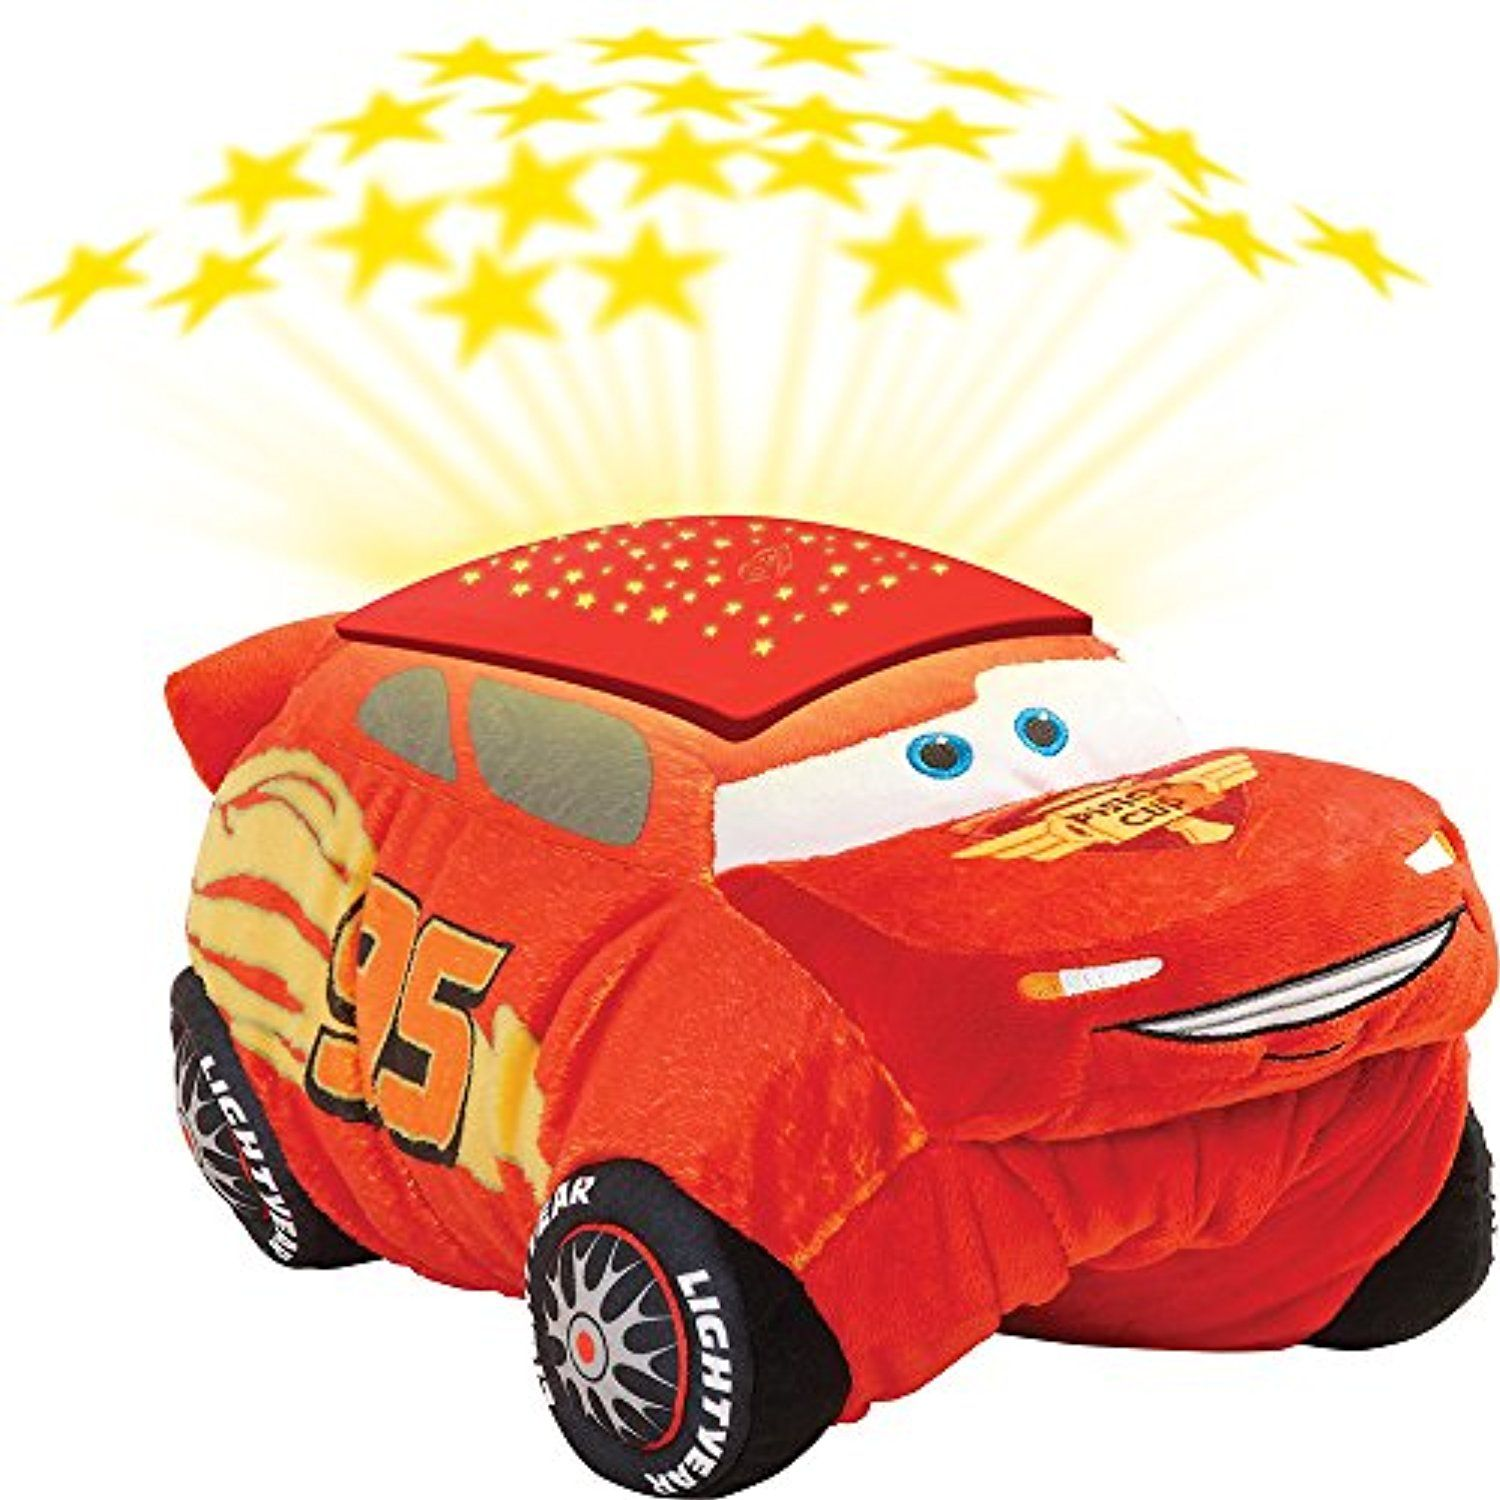 Disney Pixar Cars Pillow Pets Cars 3 Lightning Mcqueen Dream